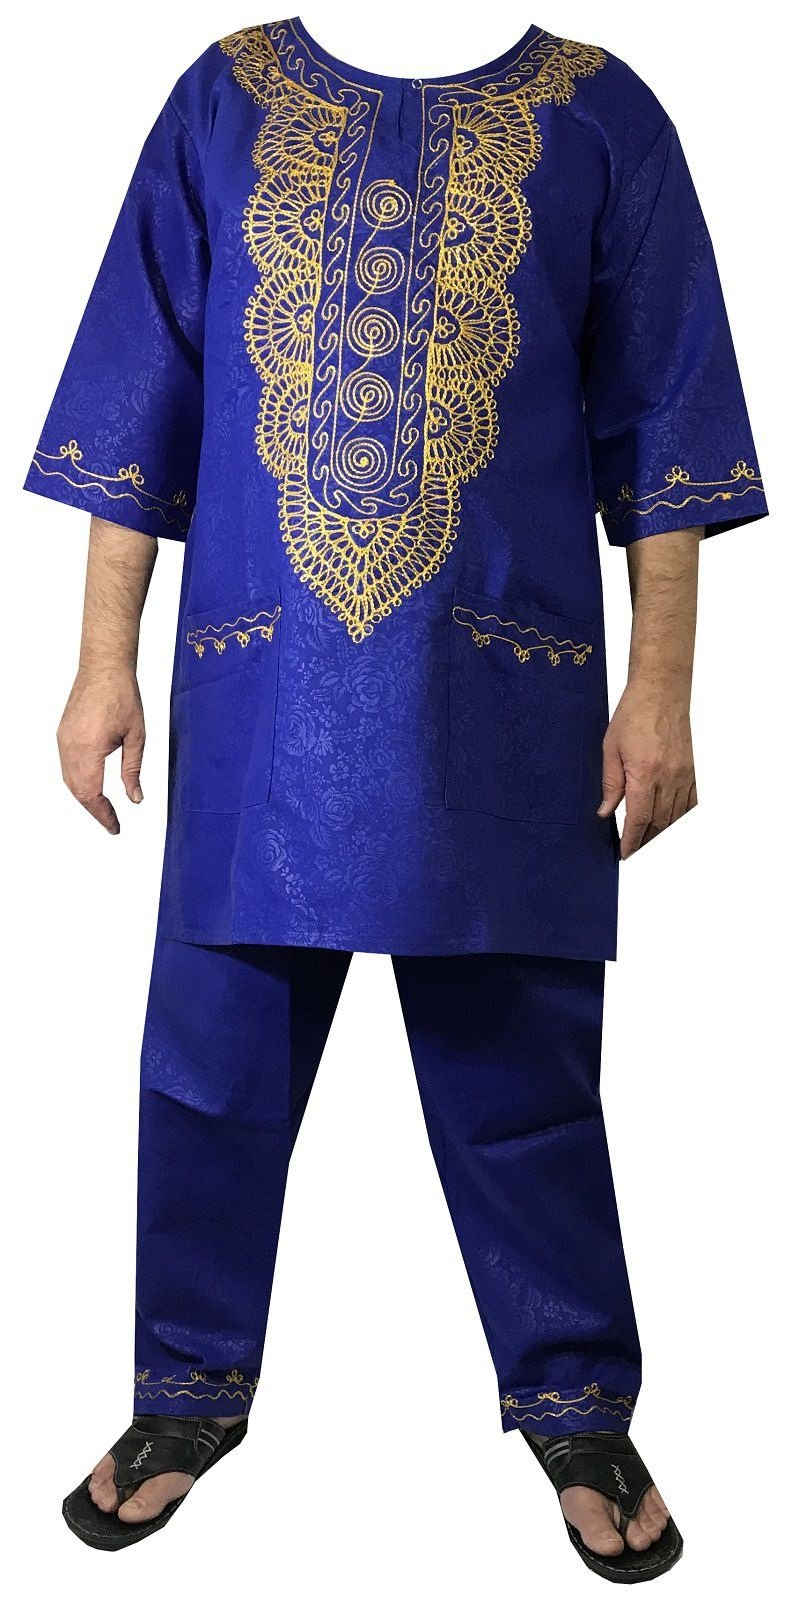 Decoraapparel african clothing attire mens ethnic pants suits traditional brocade wedding festival hippie dashiki style